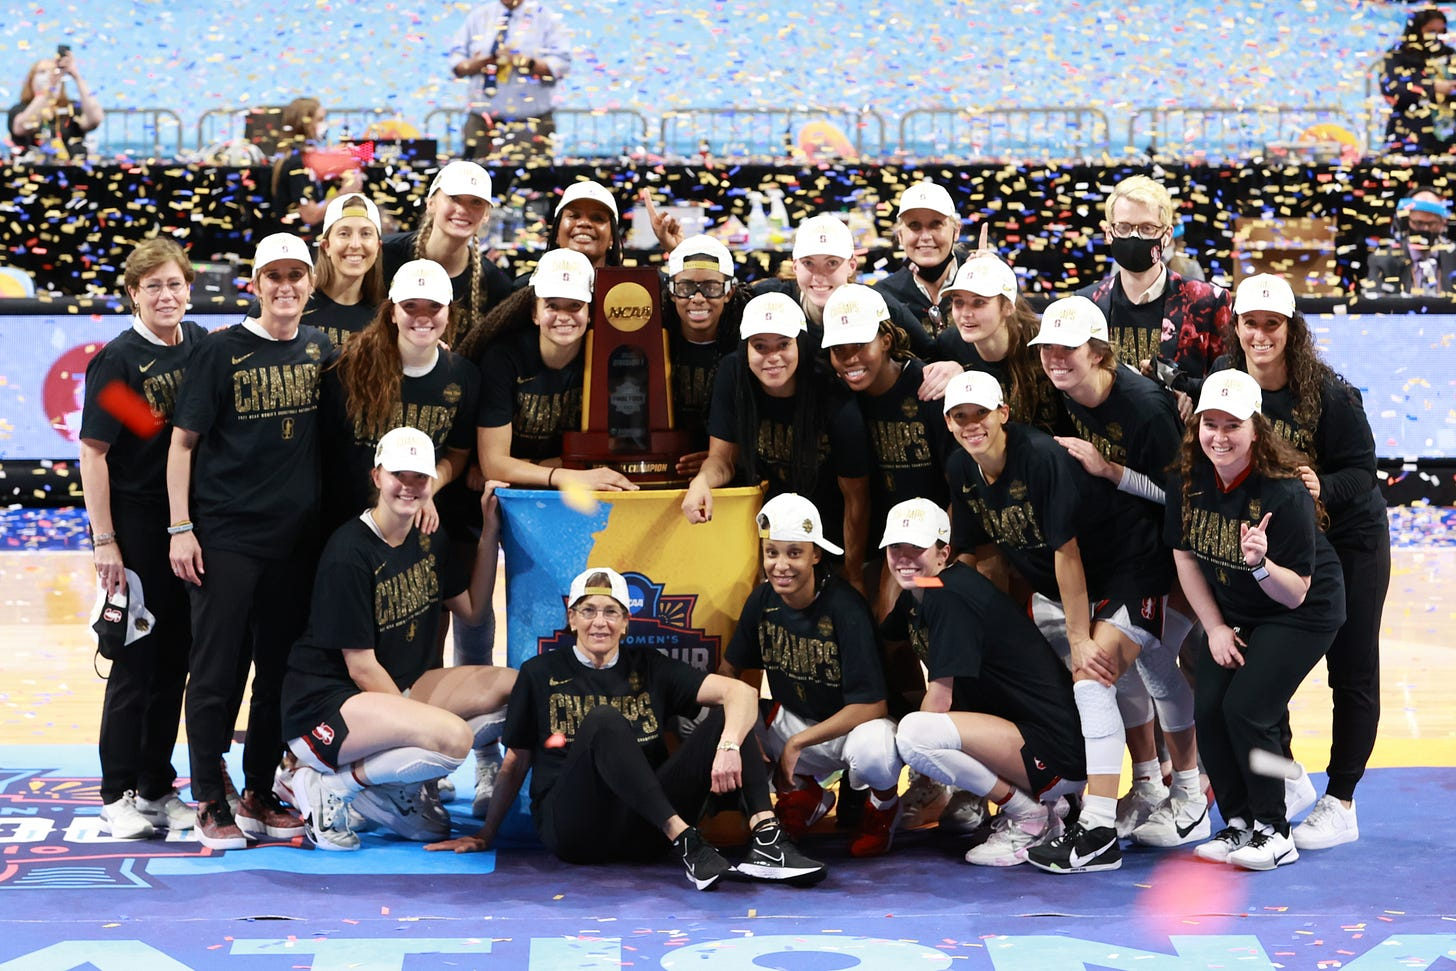 SAN ANTONIO, TX - APRIL 4: Stanford Cardinal players pose with the championship trophy after defeating the Arizona Wildcats in the championship game of the NCAA Women's Basketball Tournament at Alamodome on April 4, 2021 in San Antonio, Texas. (Photo by Justin Tafoya/NCAA Photos via Getty Images)